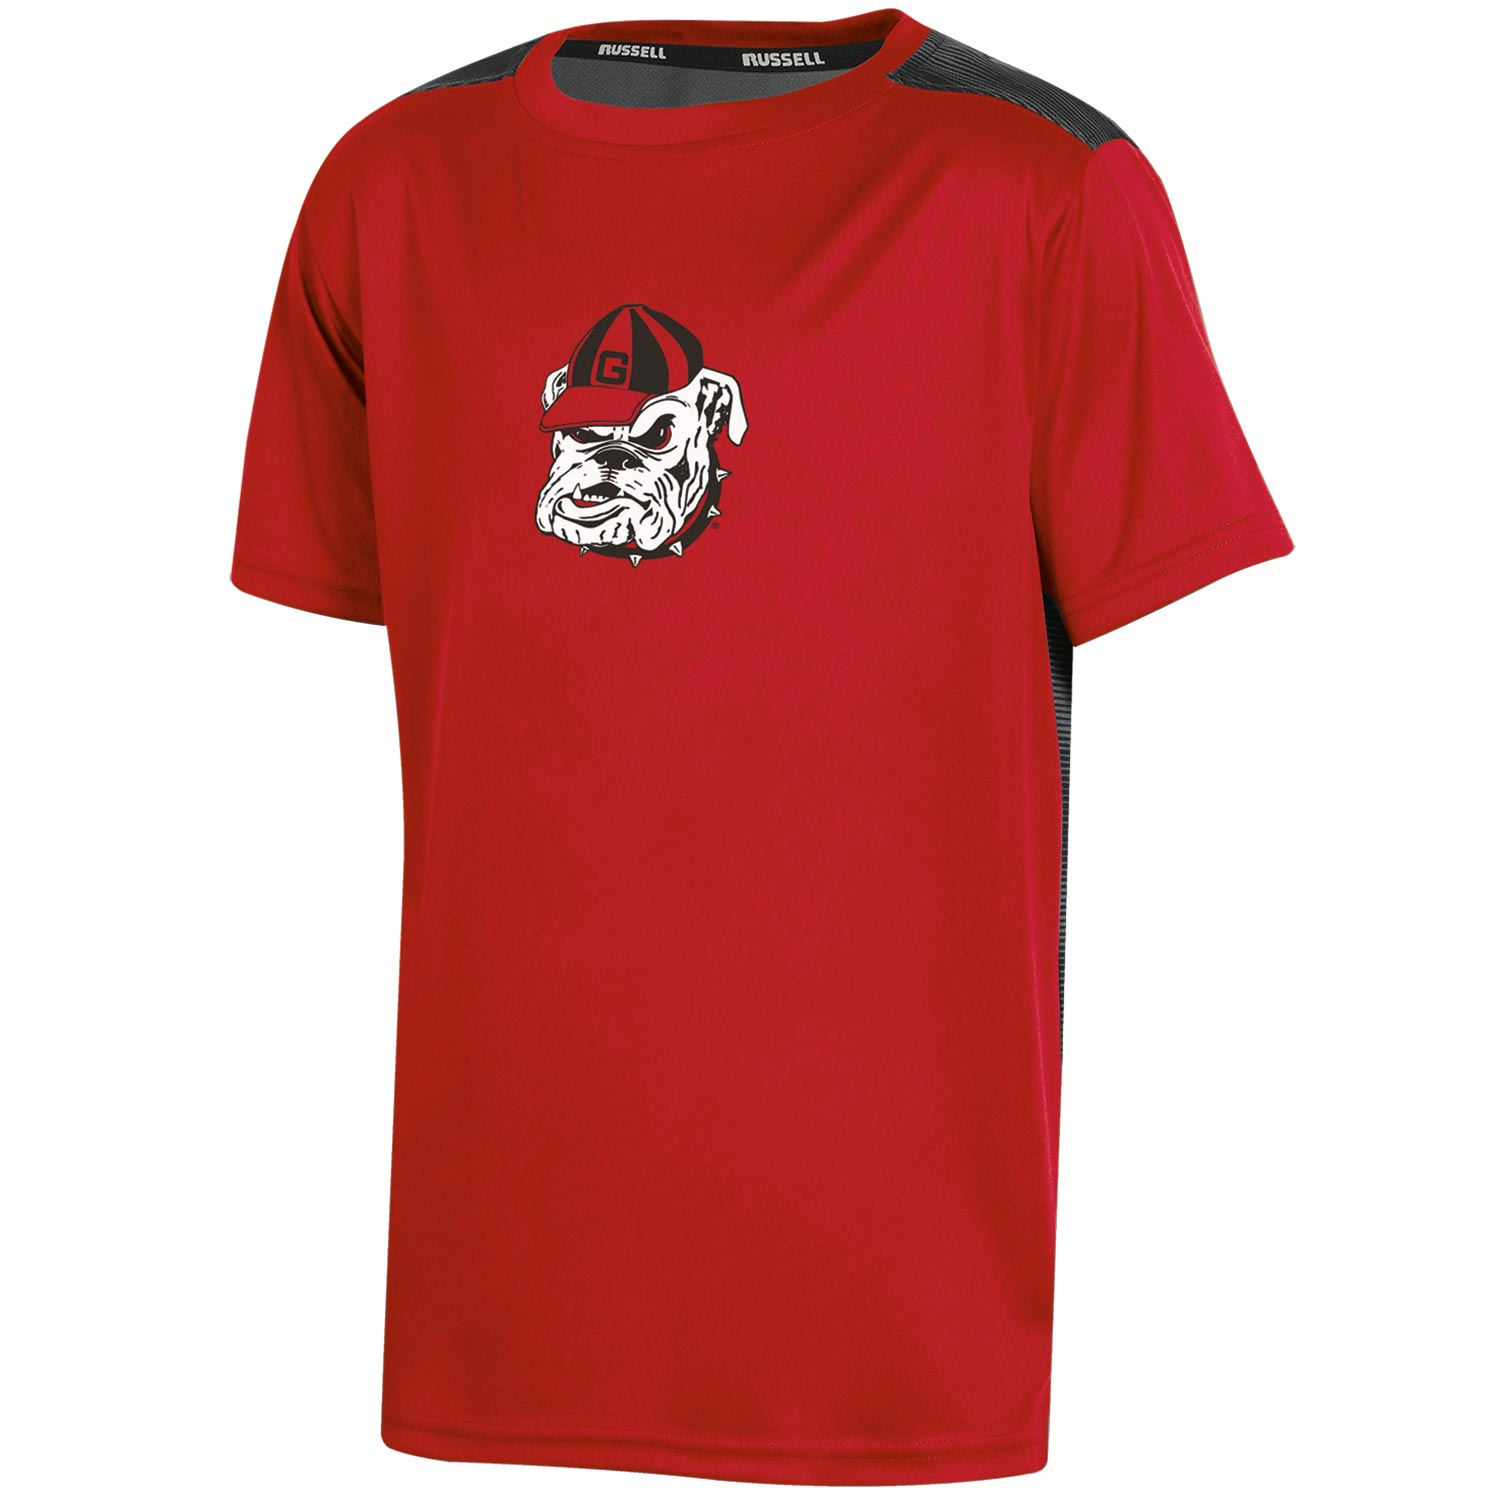 Youth Russell Red Georgia Bulldogs Color Block T-Shirt